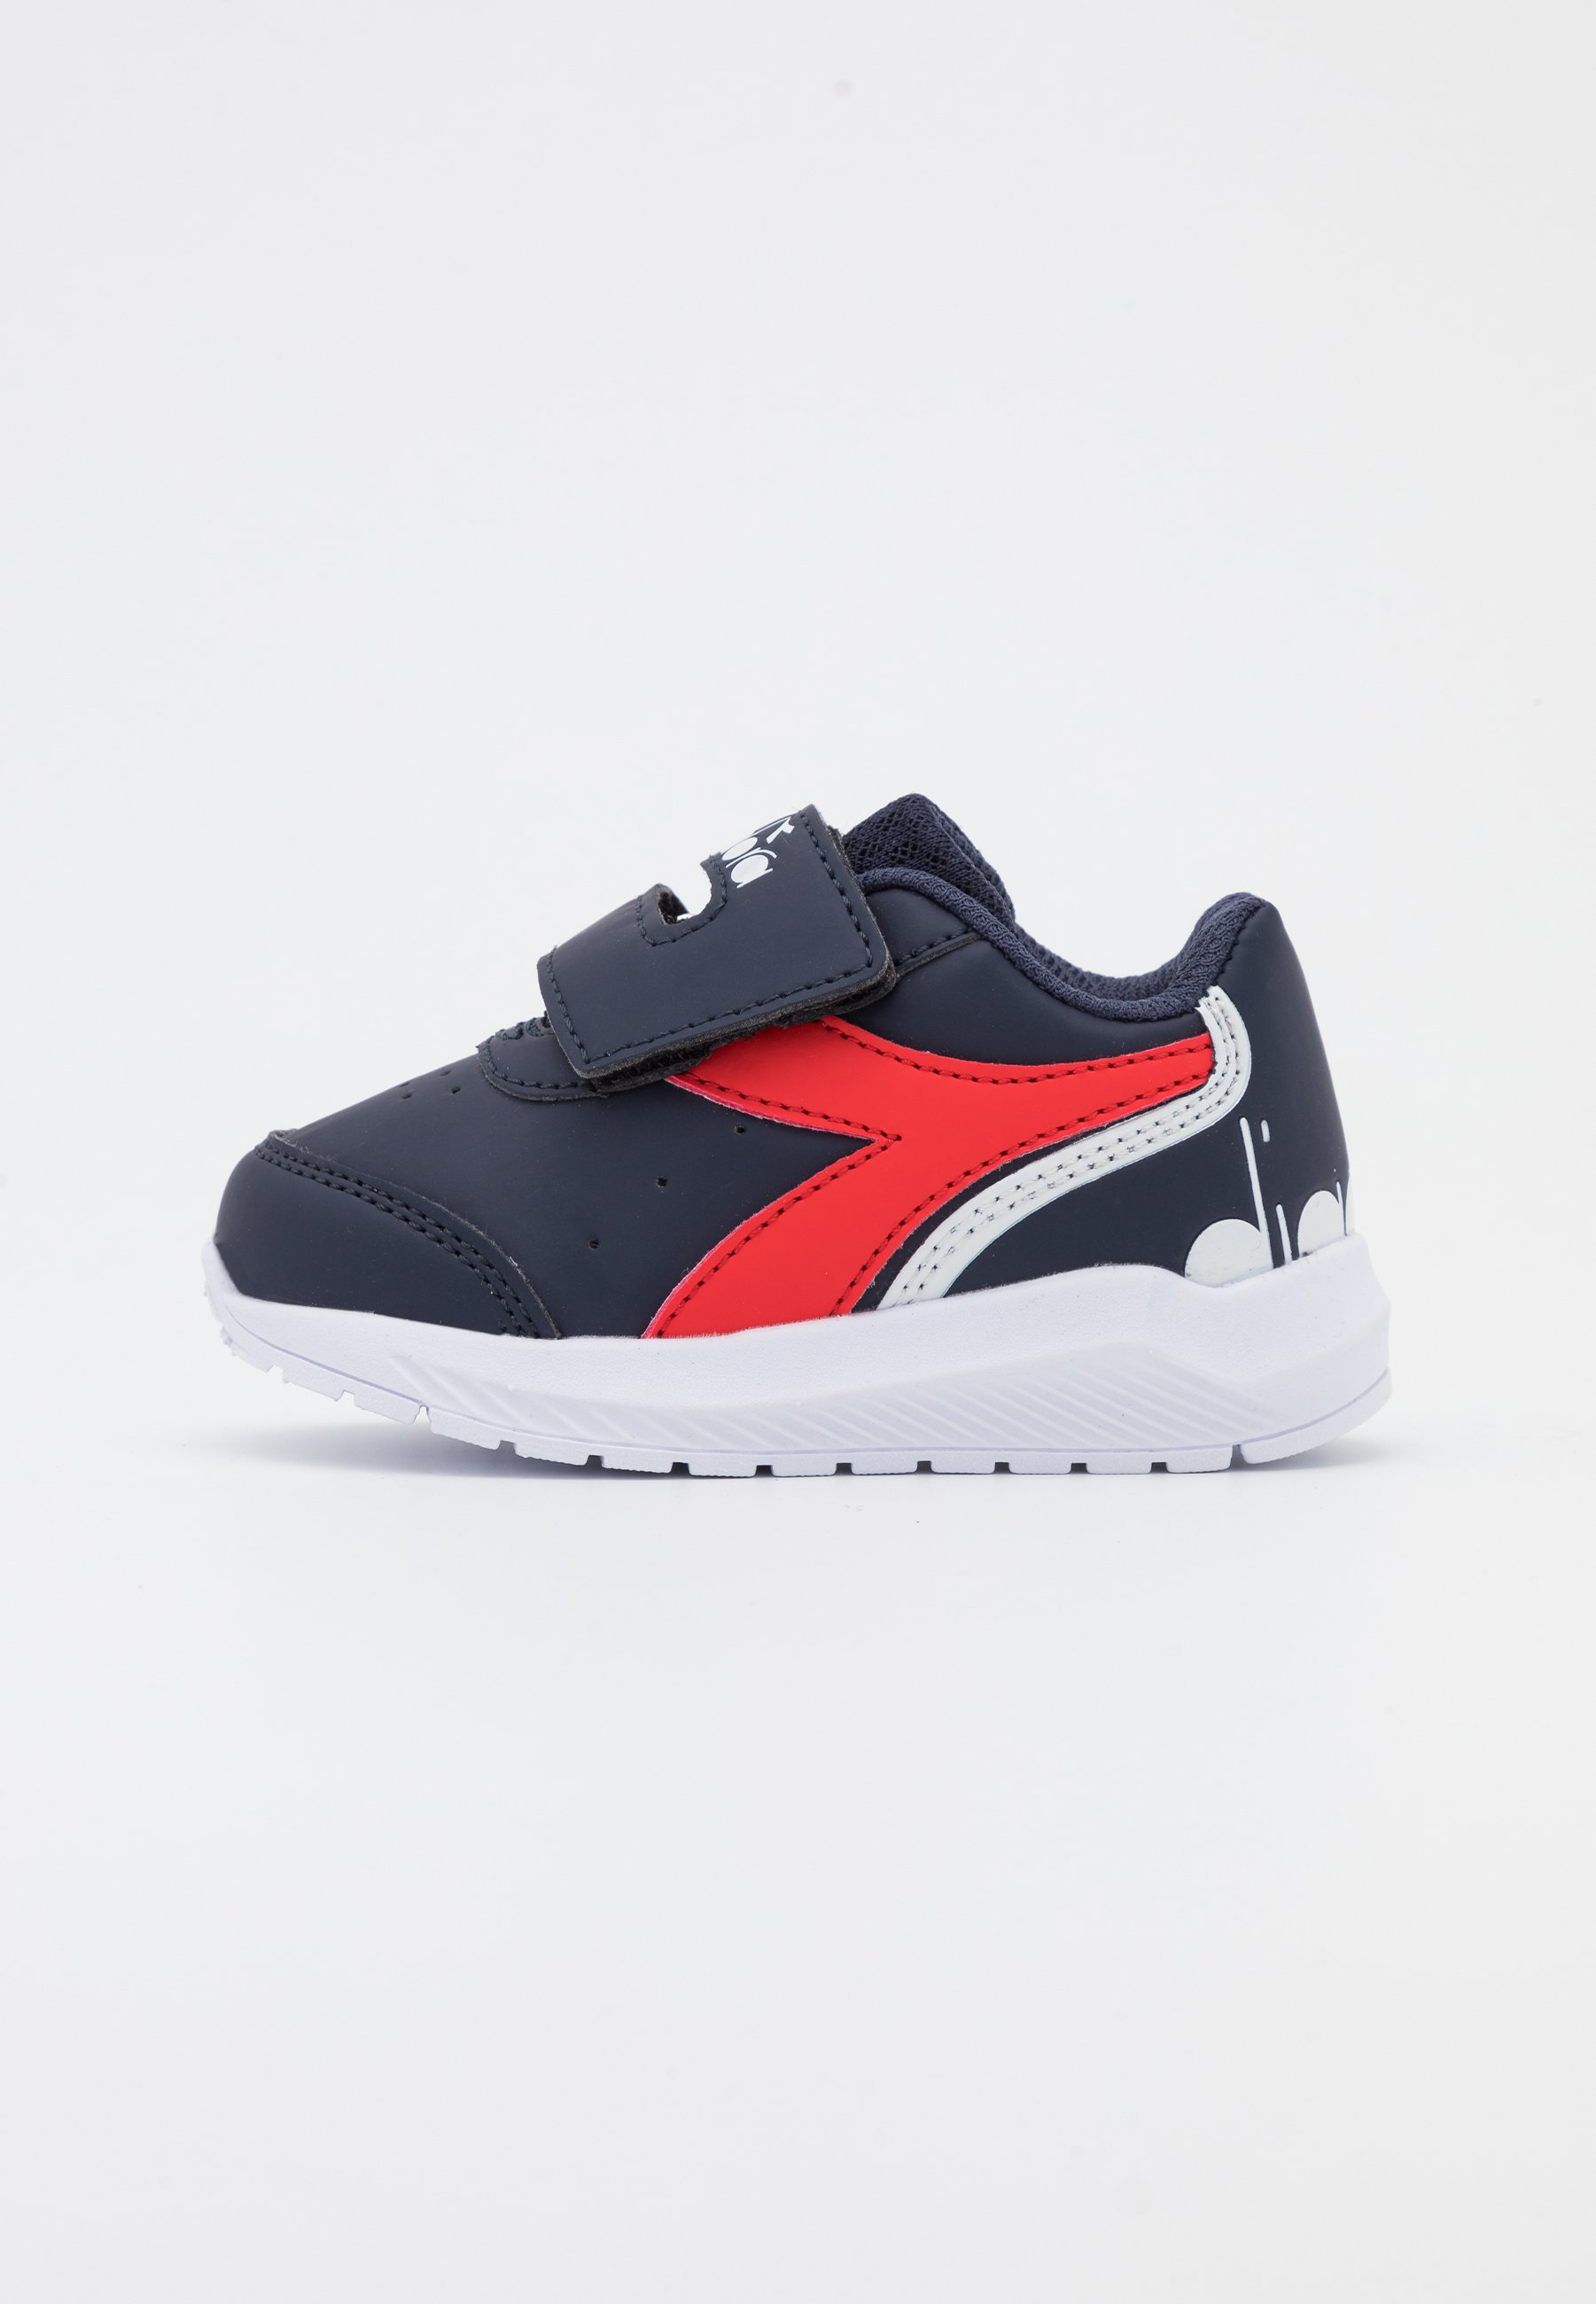 Kids Competition running shoes